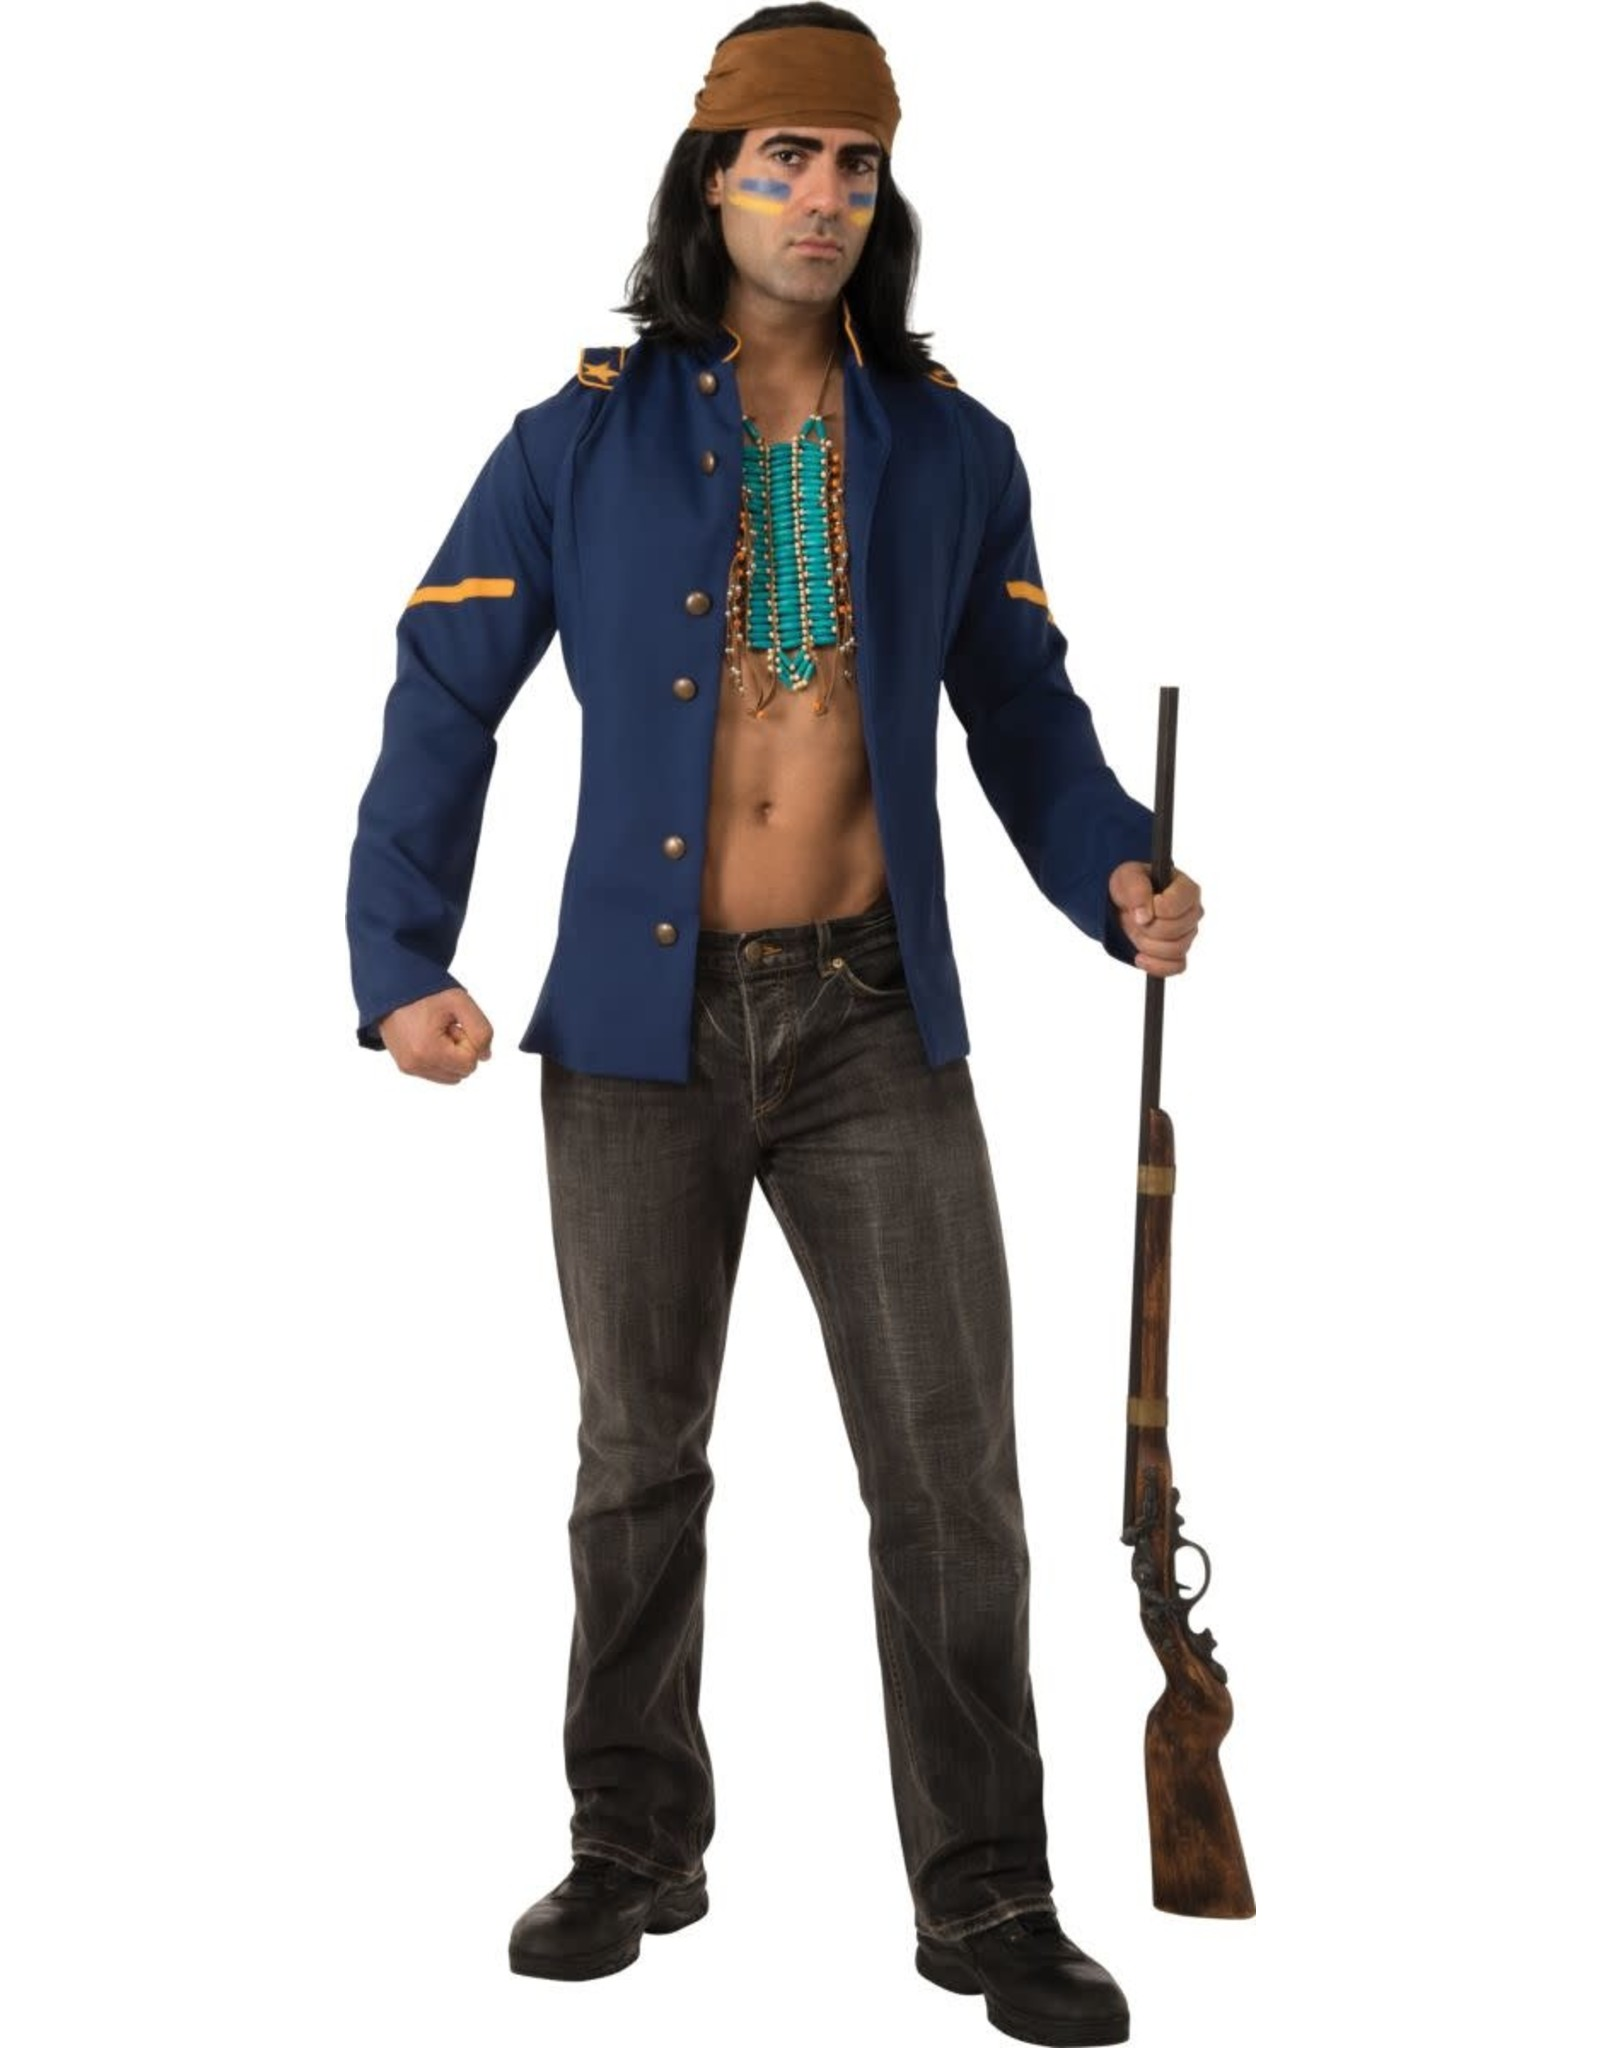 Rubies Costume Renegade Shirt and Accessories